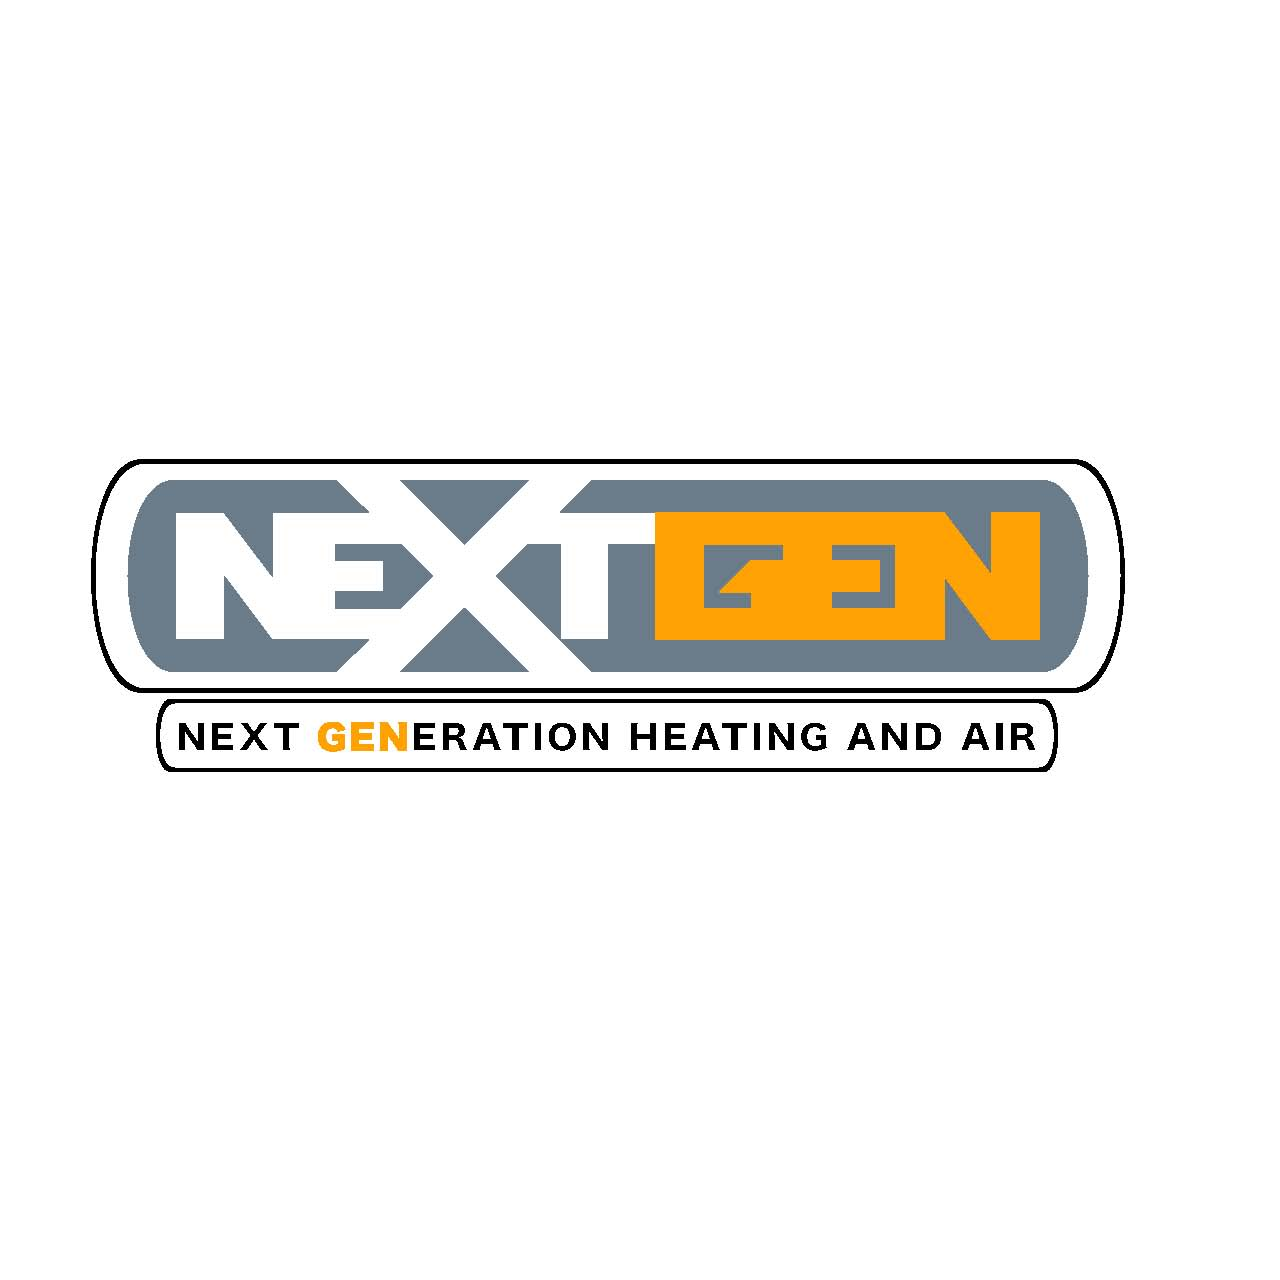 Next Generation Heating and Air